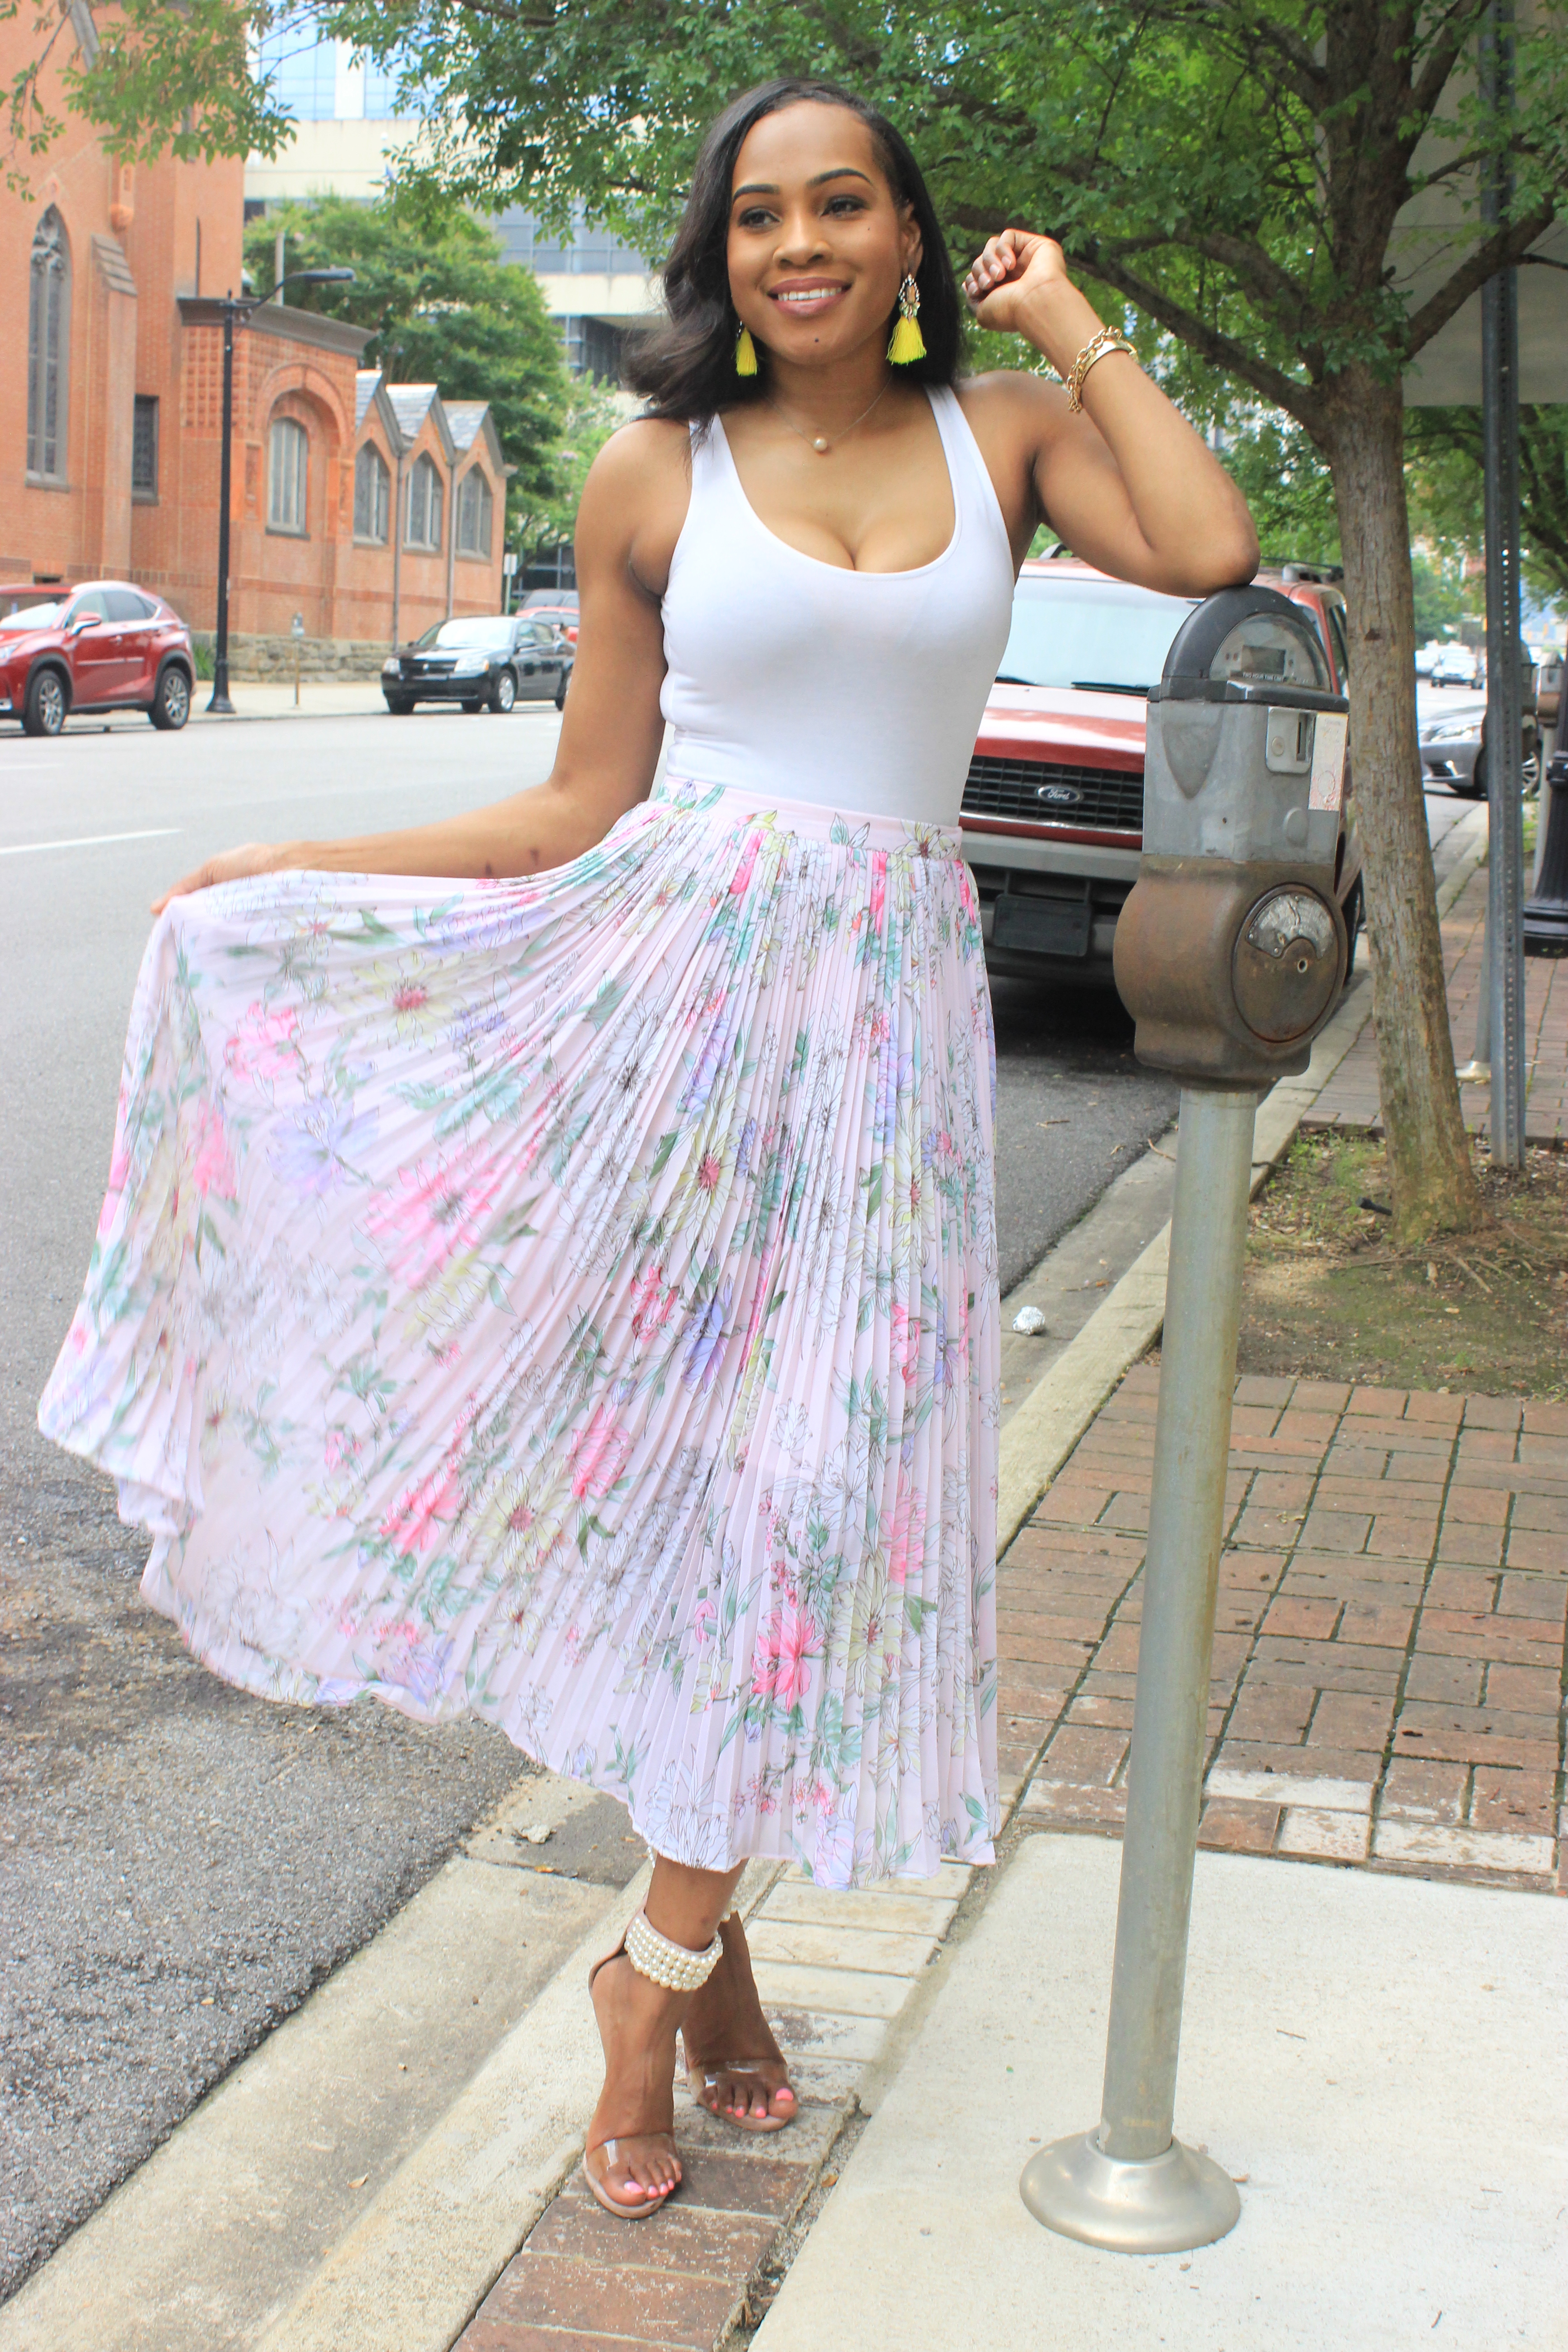 Style-files-hm-pleated-pastel-pink-floral-pleated-midi-skirt-forever21-bodysuit-misguided-pearl-ankle-strap-heel-sandals-oohlalablog-top-Birmingham-Alabama-blogger-7